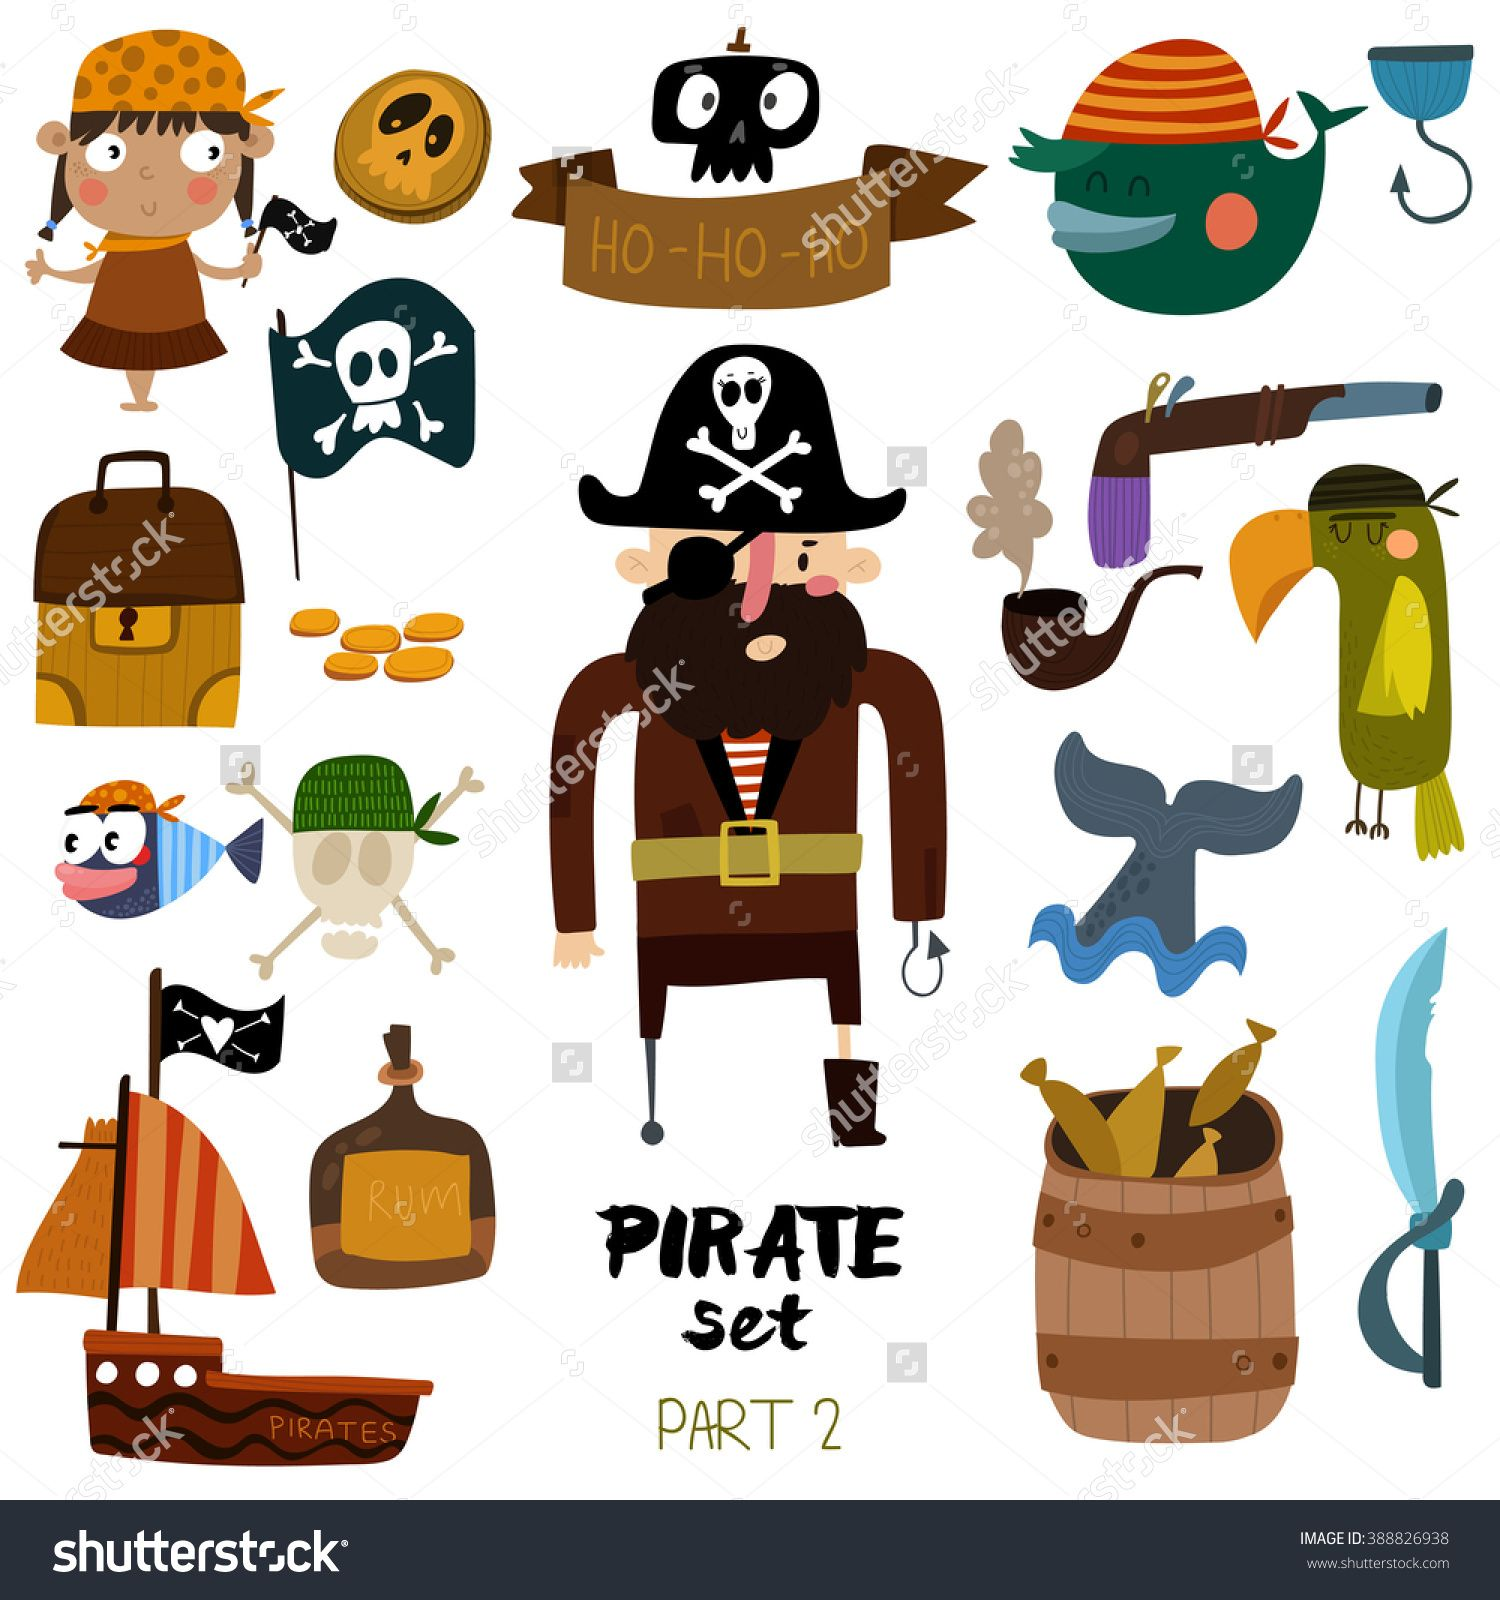 vector set of pirate items pirate ship skull parrot whale